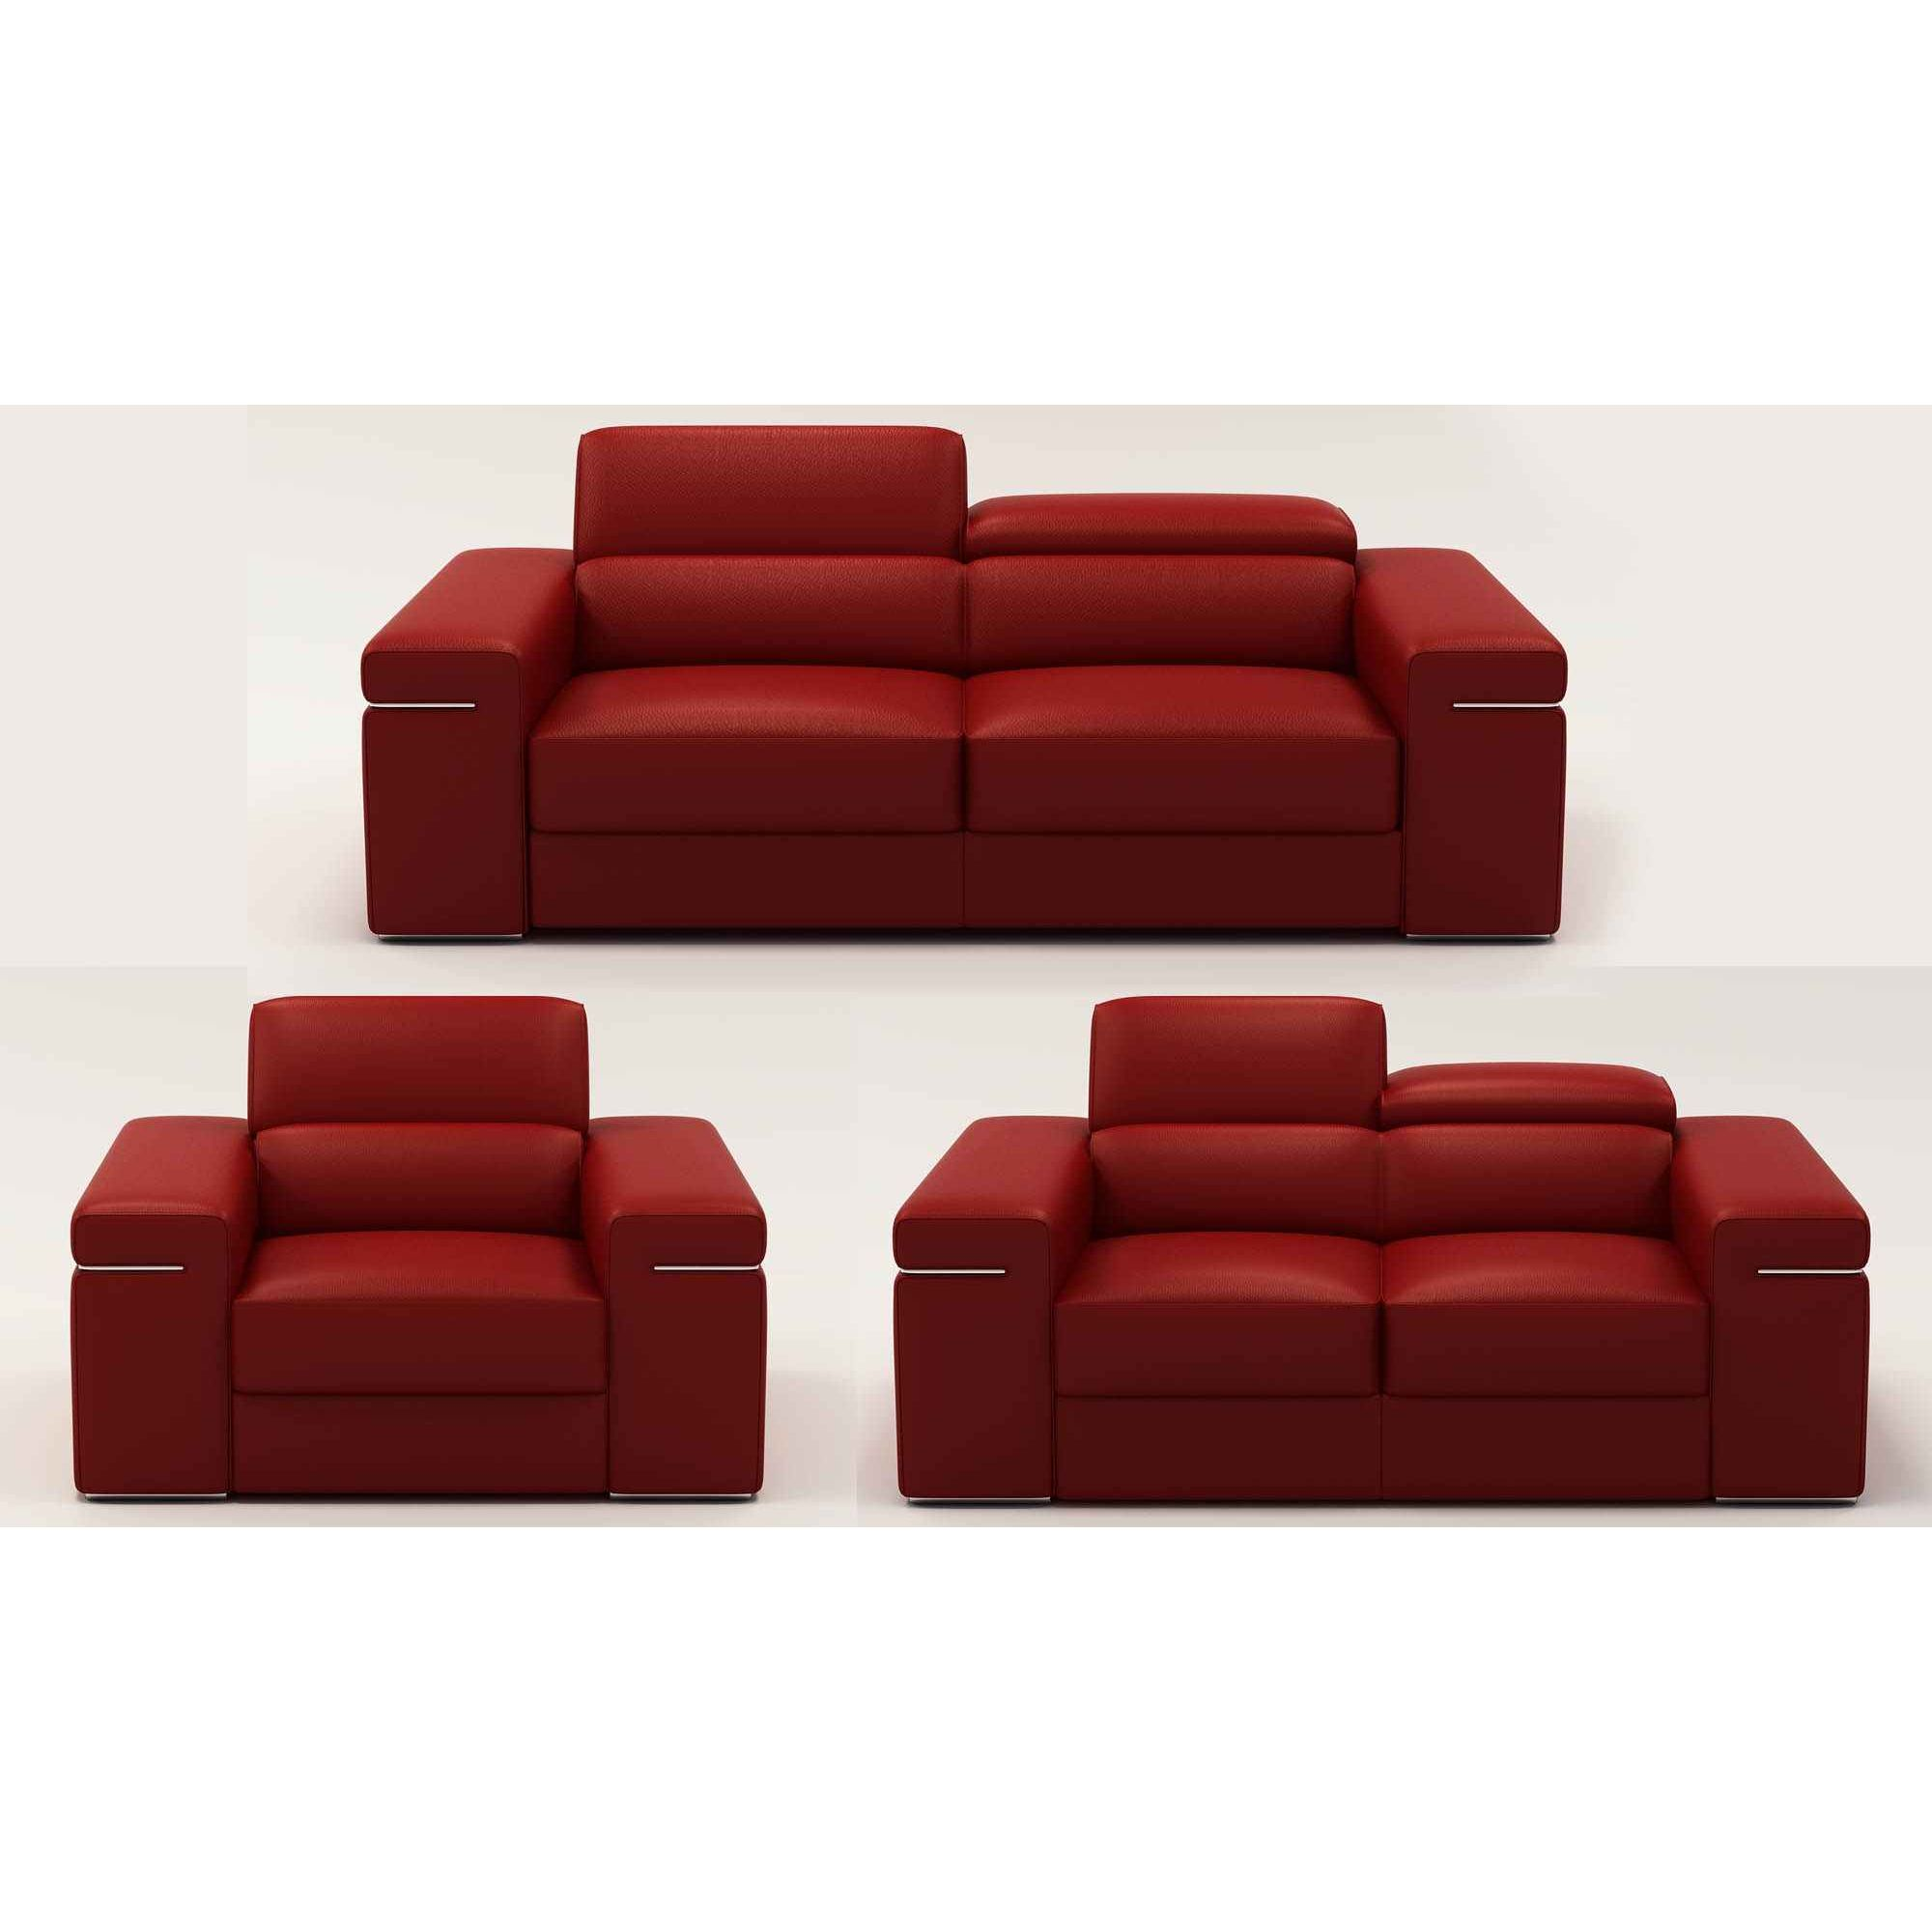 deco in paris ensemble canape 3 2 1 places en cuir rouge thomas can 3 2 1 rouge thomas. Black Bedroom Furniture Sets. Home Design Ideas